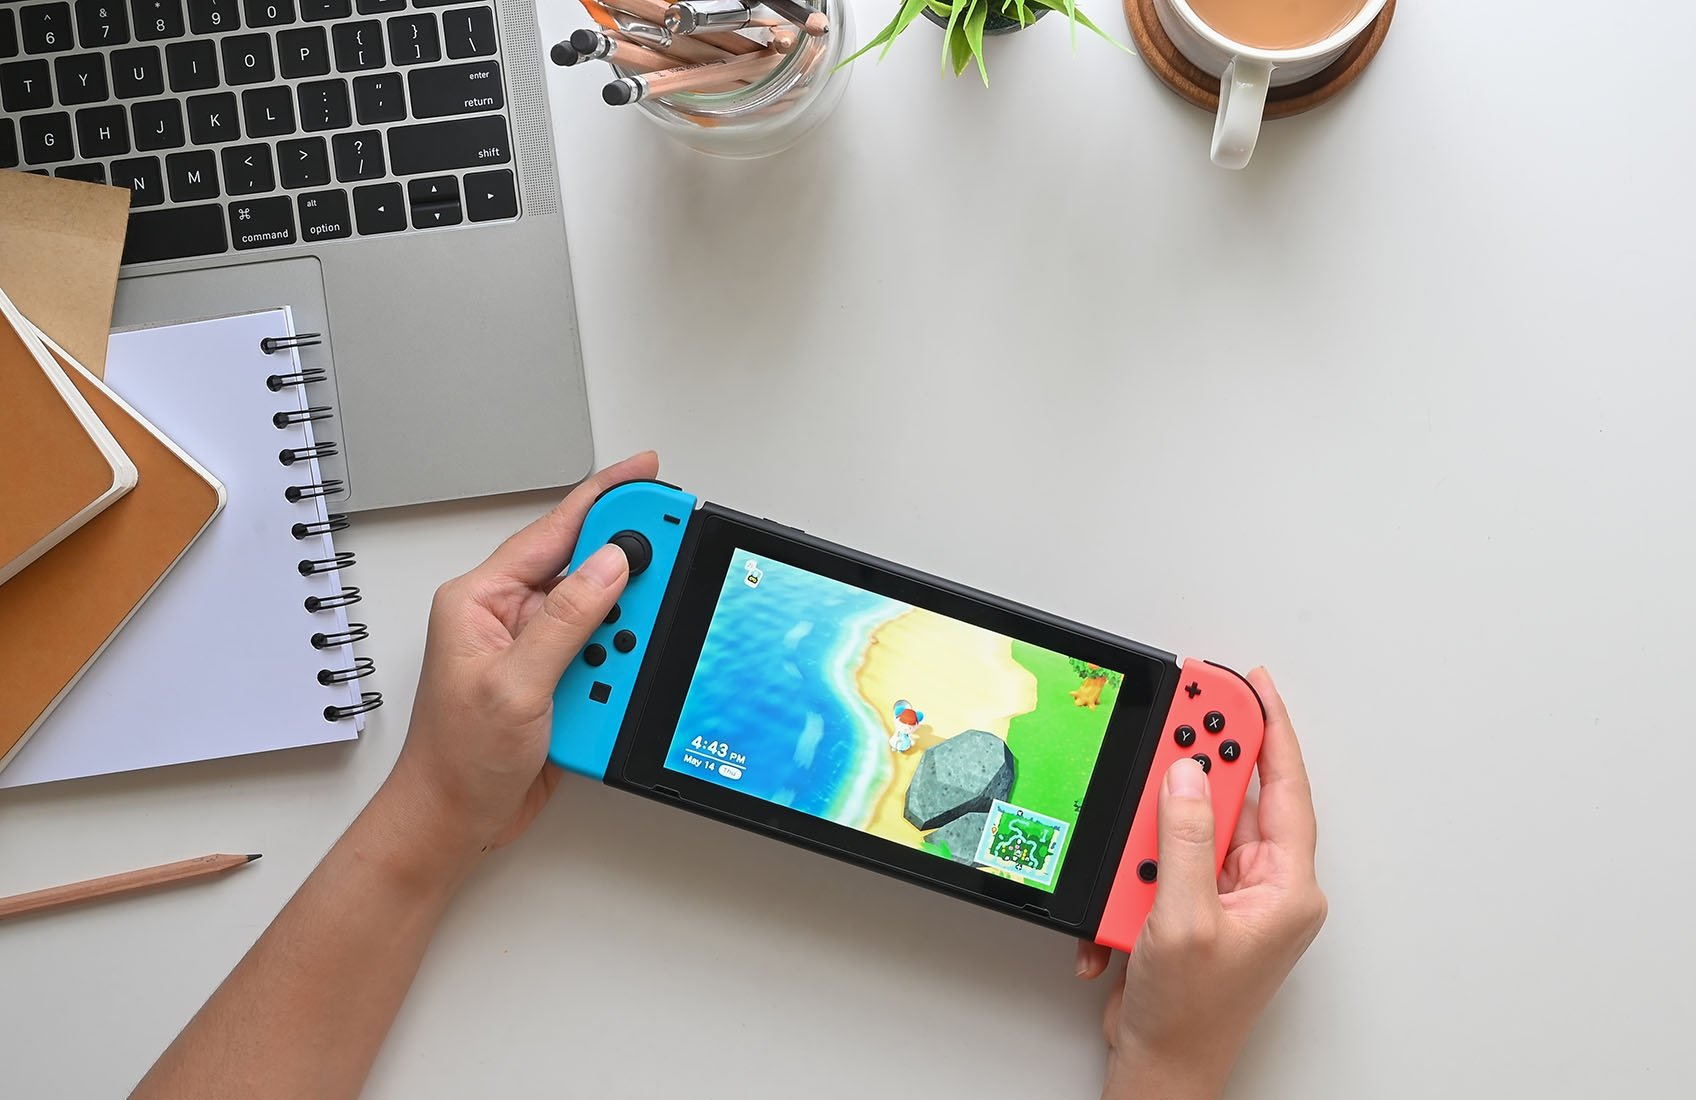 A woman plays Animal Crossing New Horizons on a Nintendo Switch console in Chiangmai, Thailand, May 14, 2020. (Shutterstock Photo)